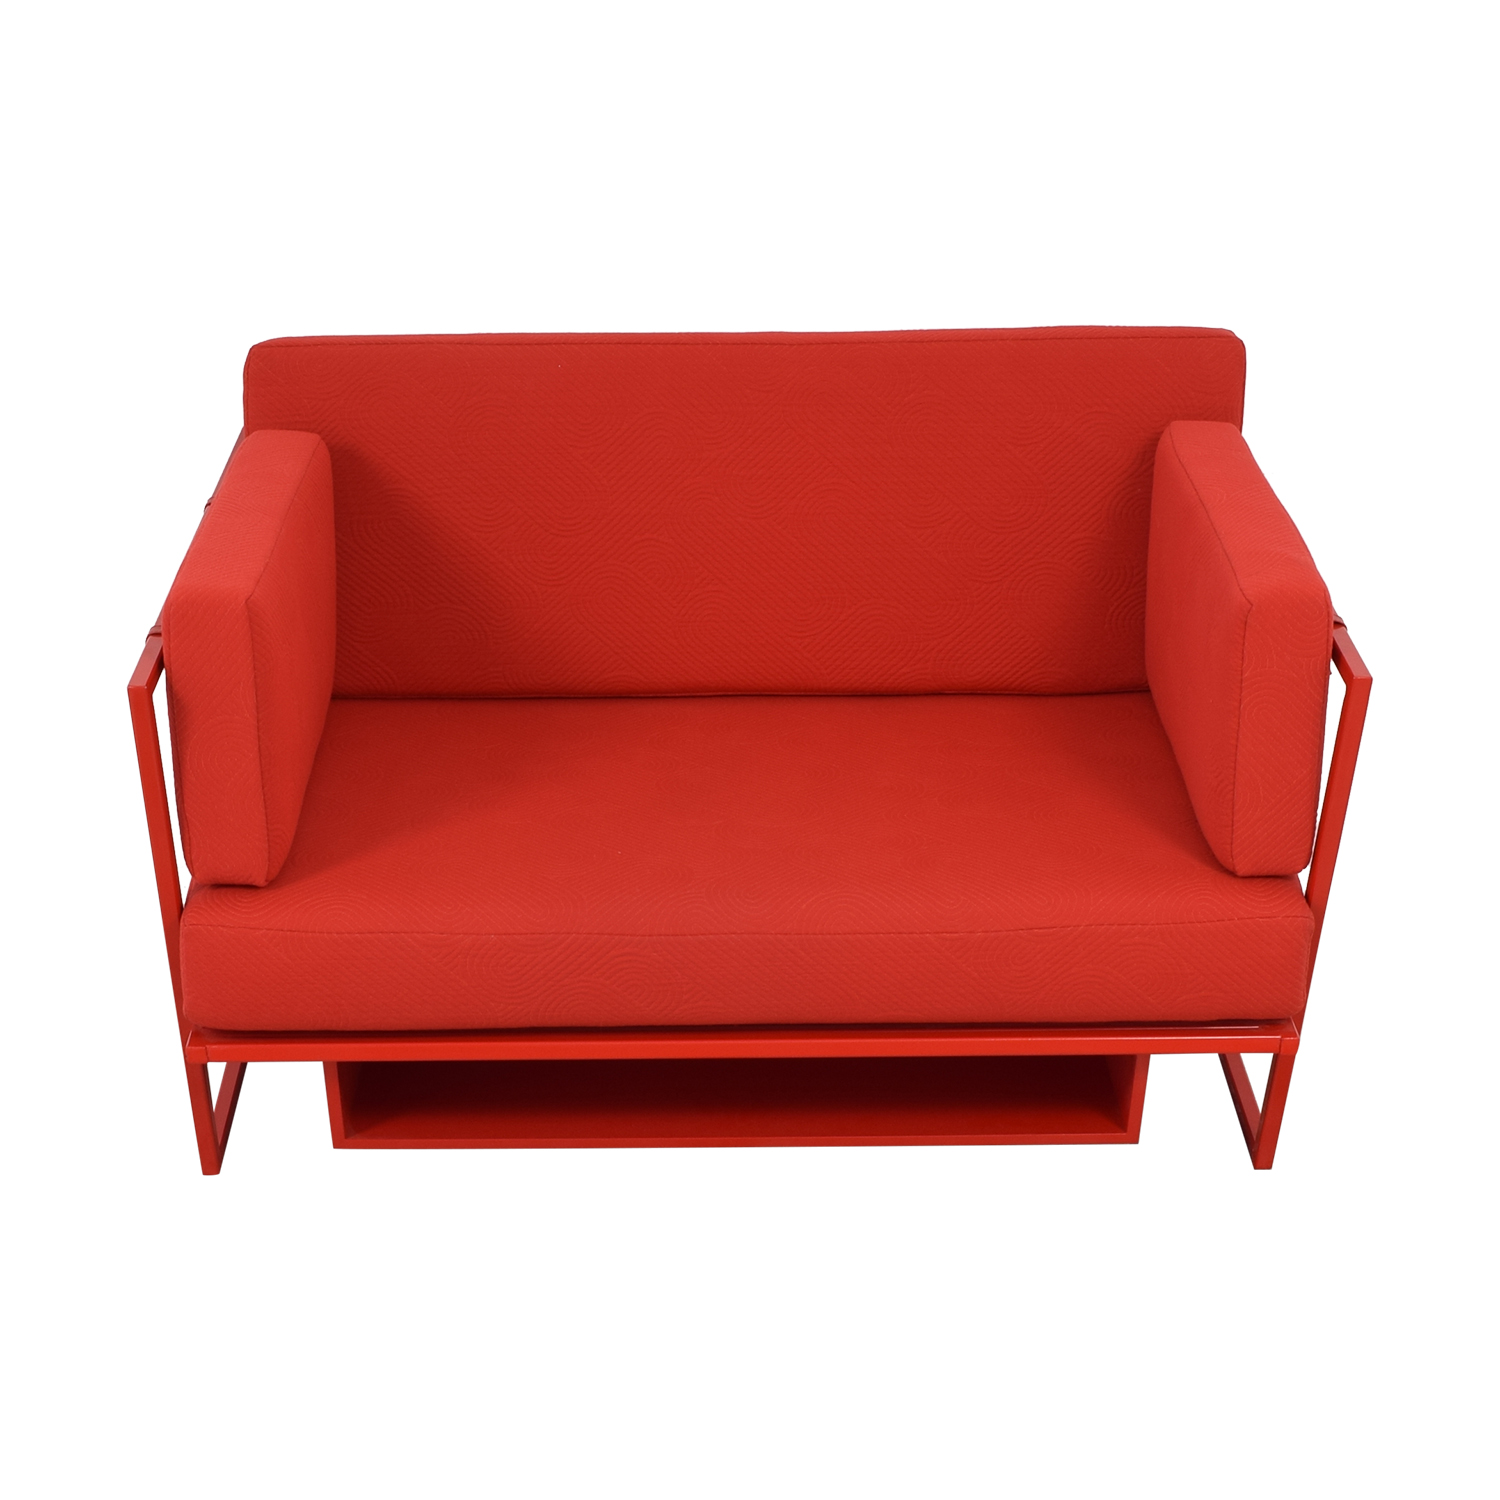 Collector NYC Collector NYC Custom Red Sofa coupon